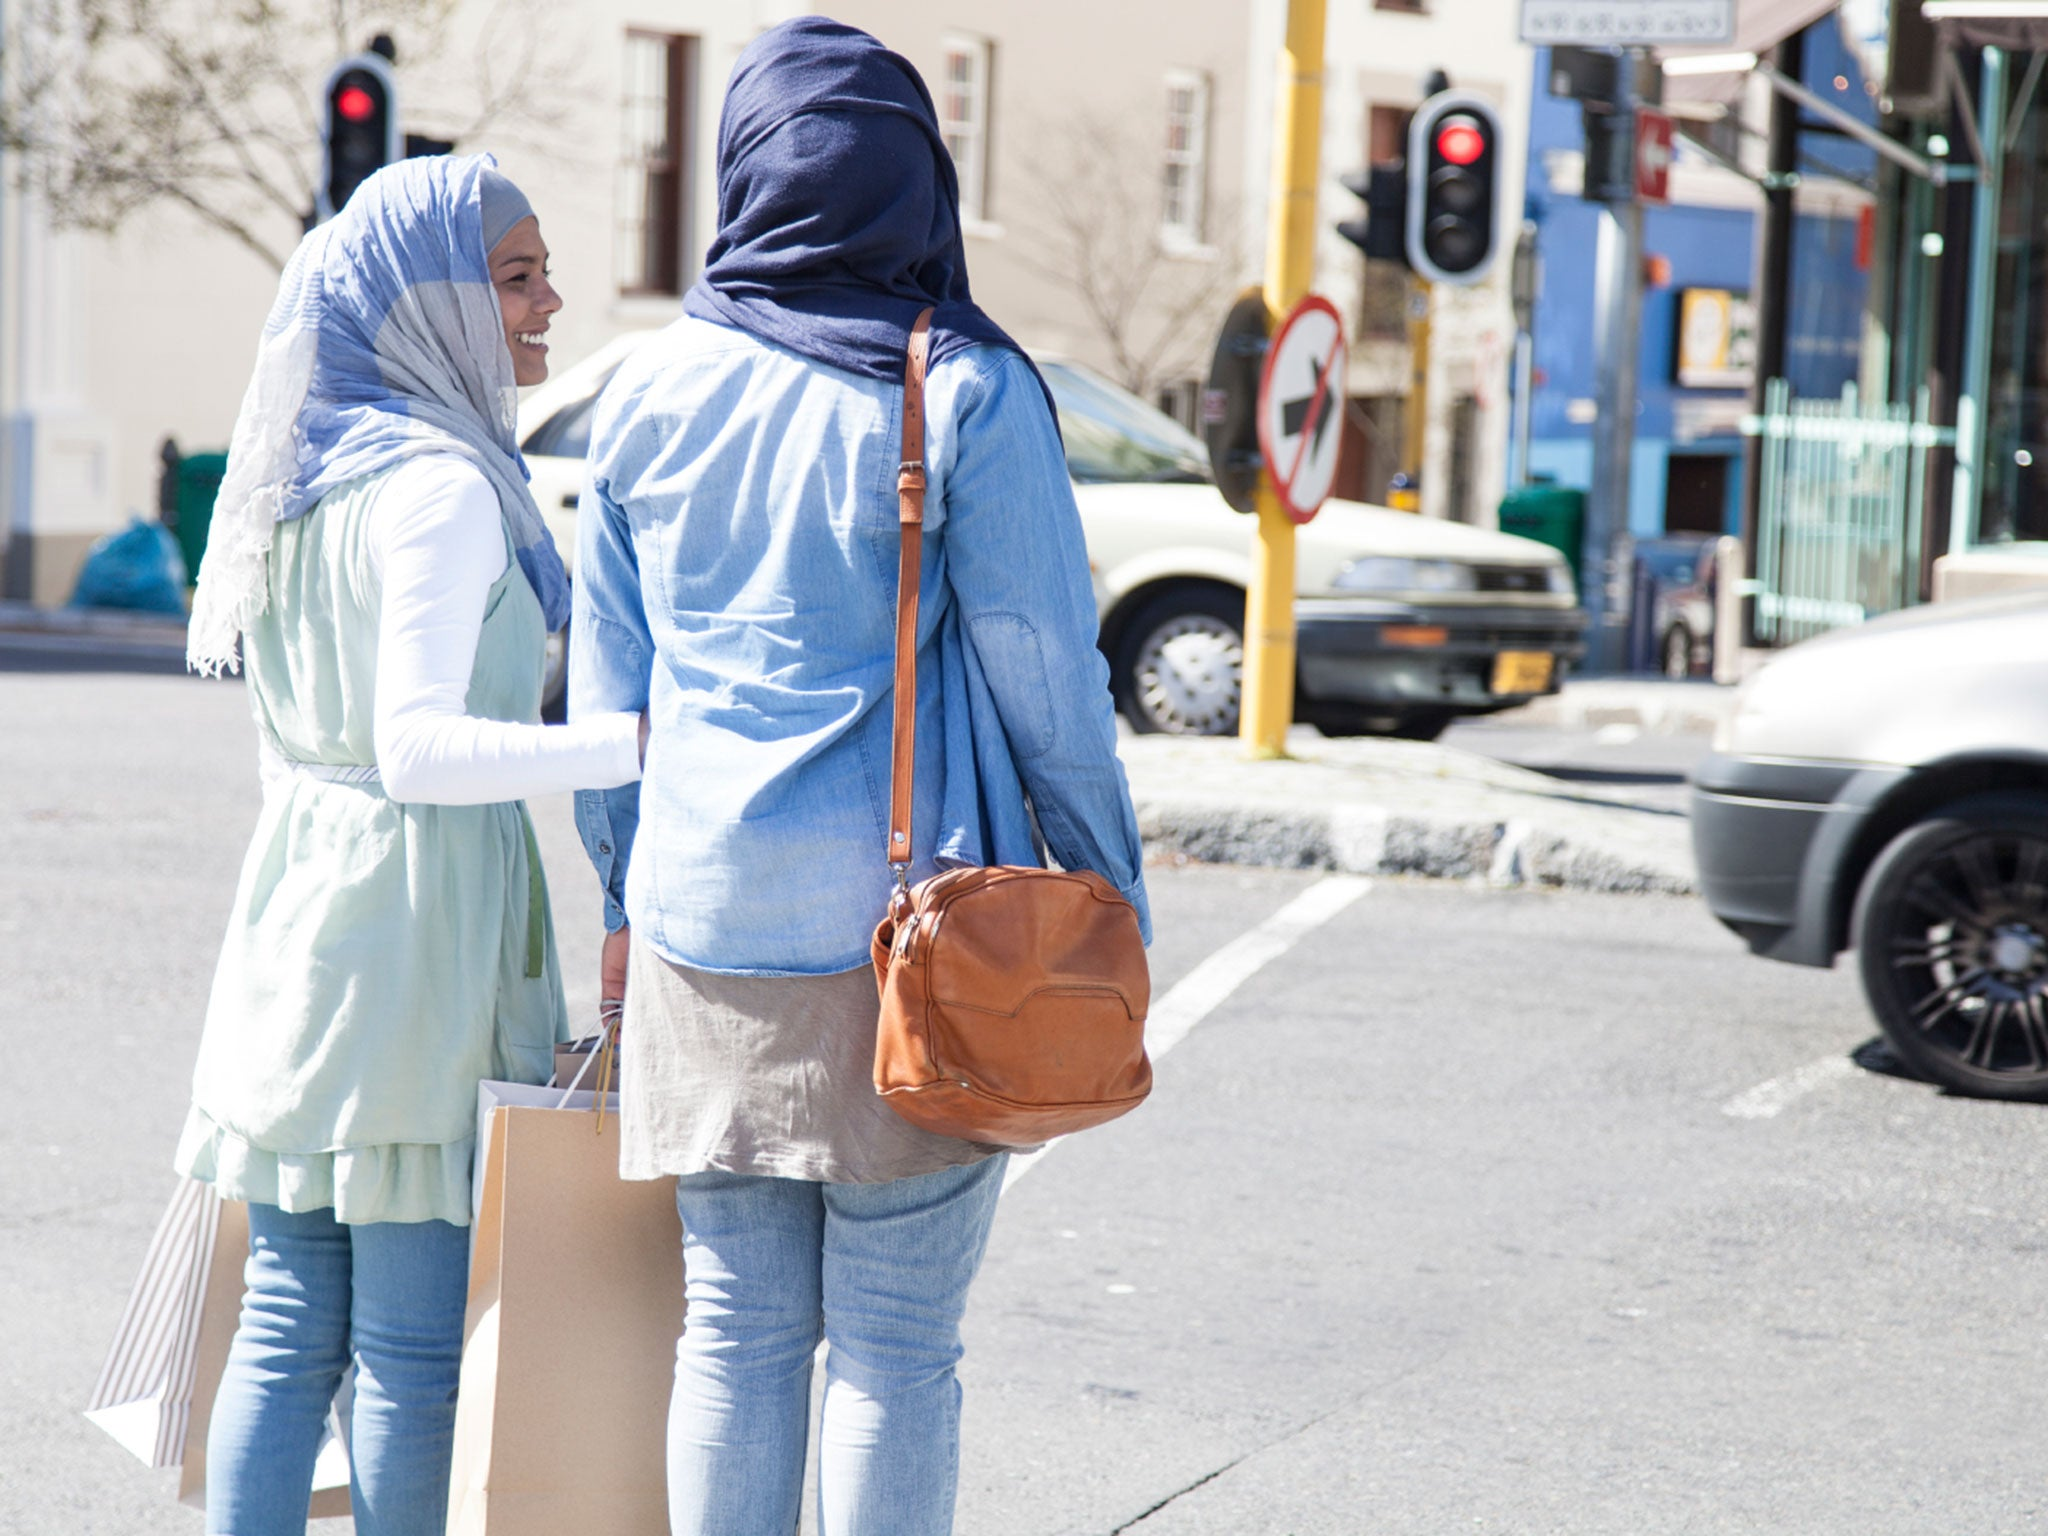 porter muslim girl personals 5 hijabis get real on what it's like to date when you're muslim-american the good 'you're like the hottest muslim girl on campus.